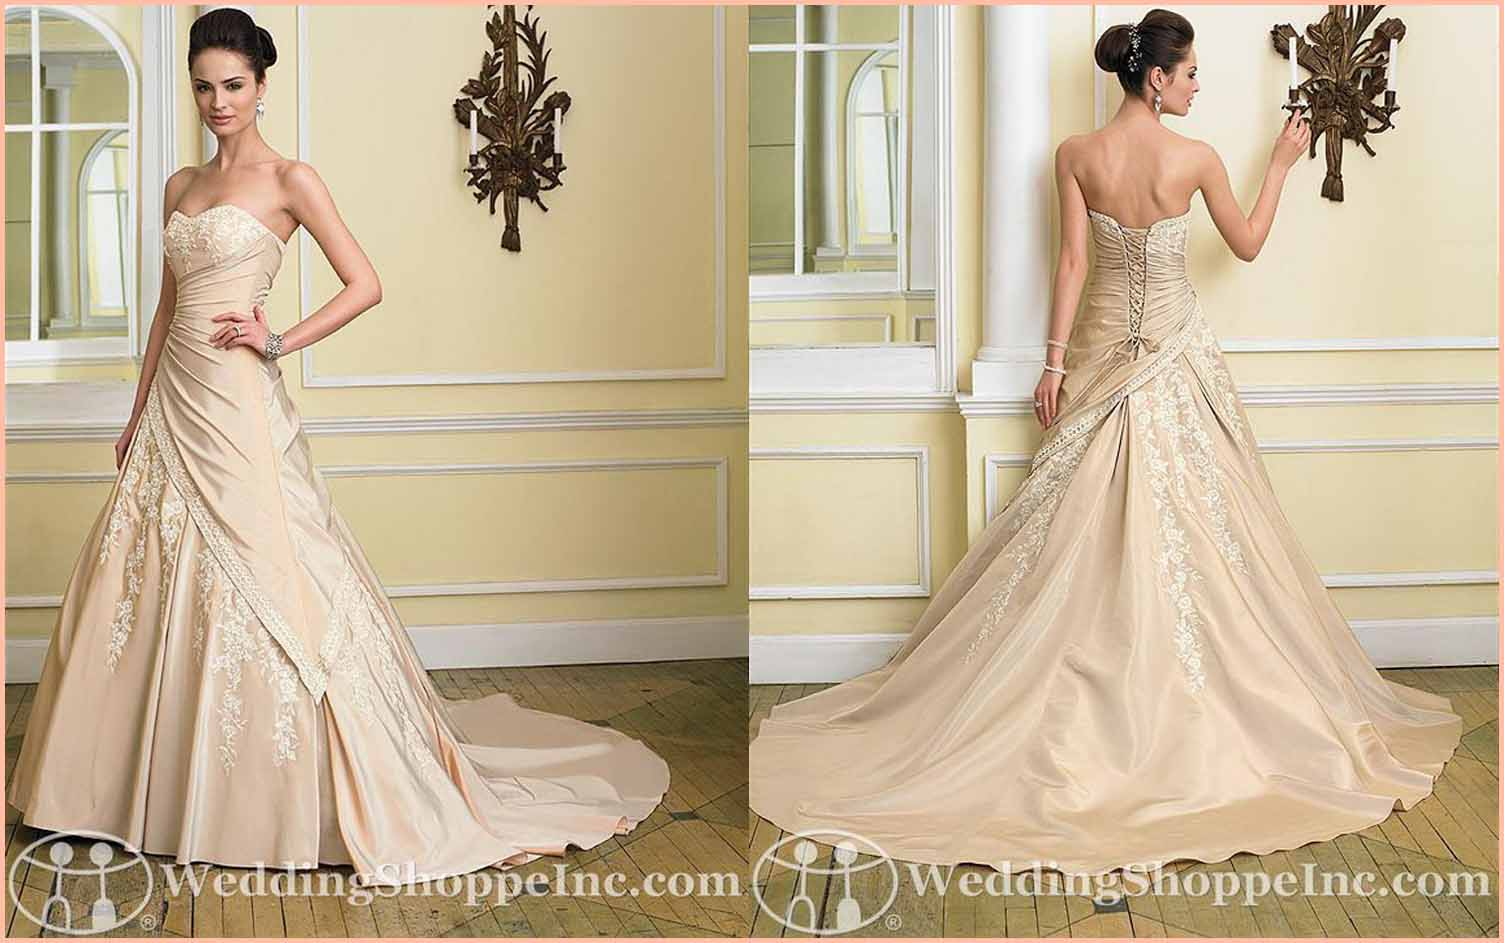 Colored Wedding Gowns: Sophia Tolli Emily